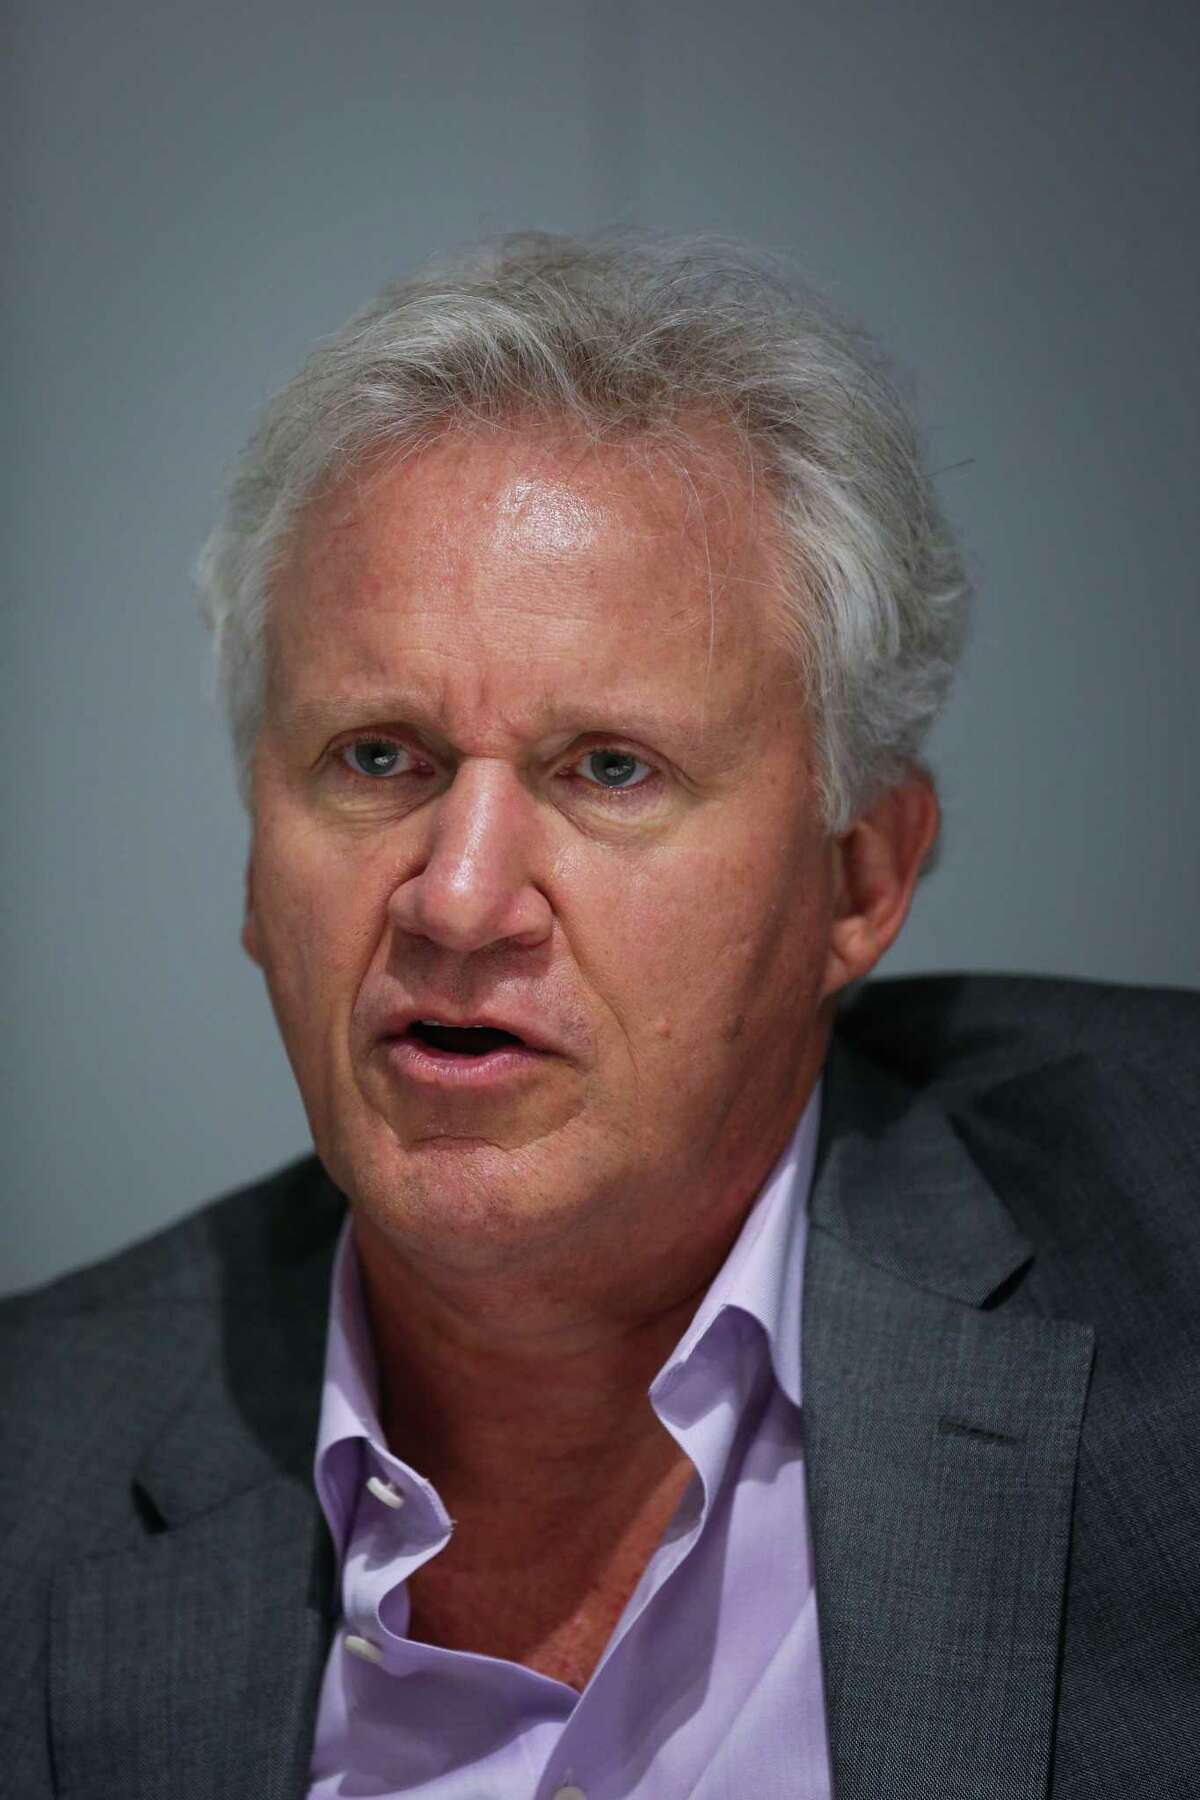 General Electric CEO Jeff Immelt gives an interview during the GE Minds & Machines conference, in San Francisco, California, on Tuesday, Nov. 15, 2016.